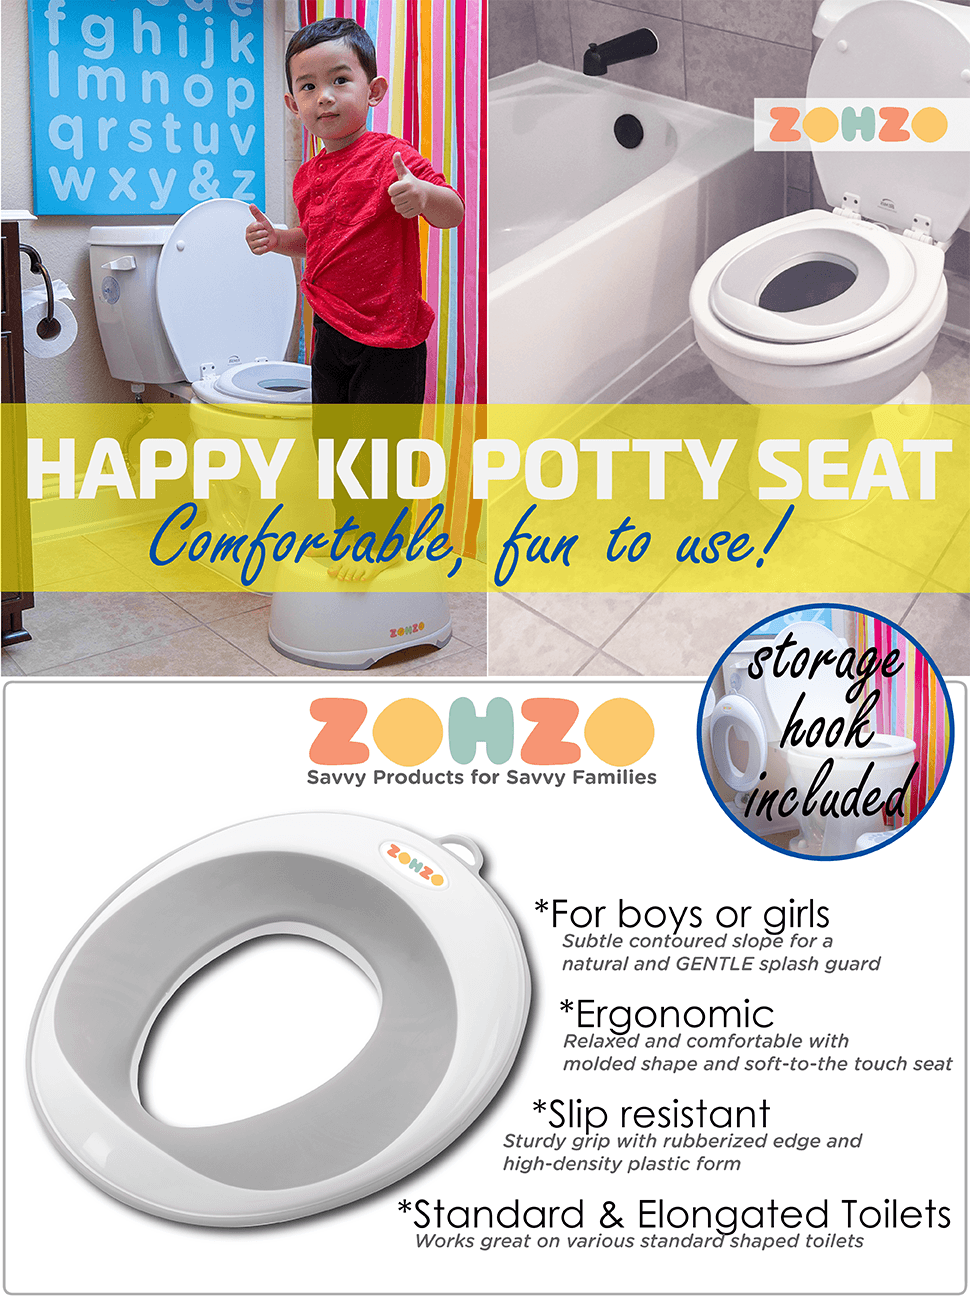 ZOHZO Happy Kid Universal Potty Training Seat w  storage suctional cup hook and wall mount included Amazon com By Zohzo Design That